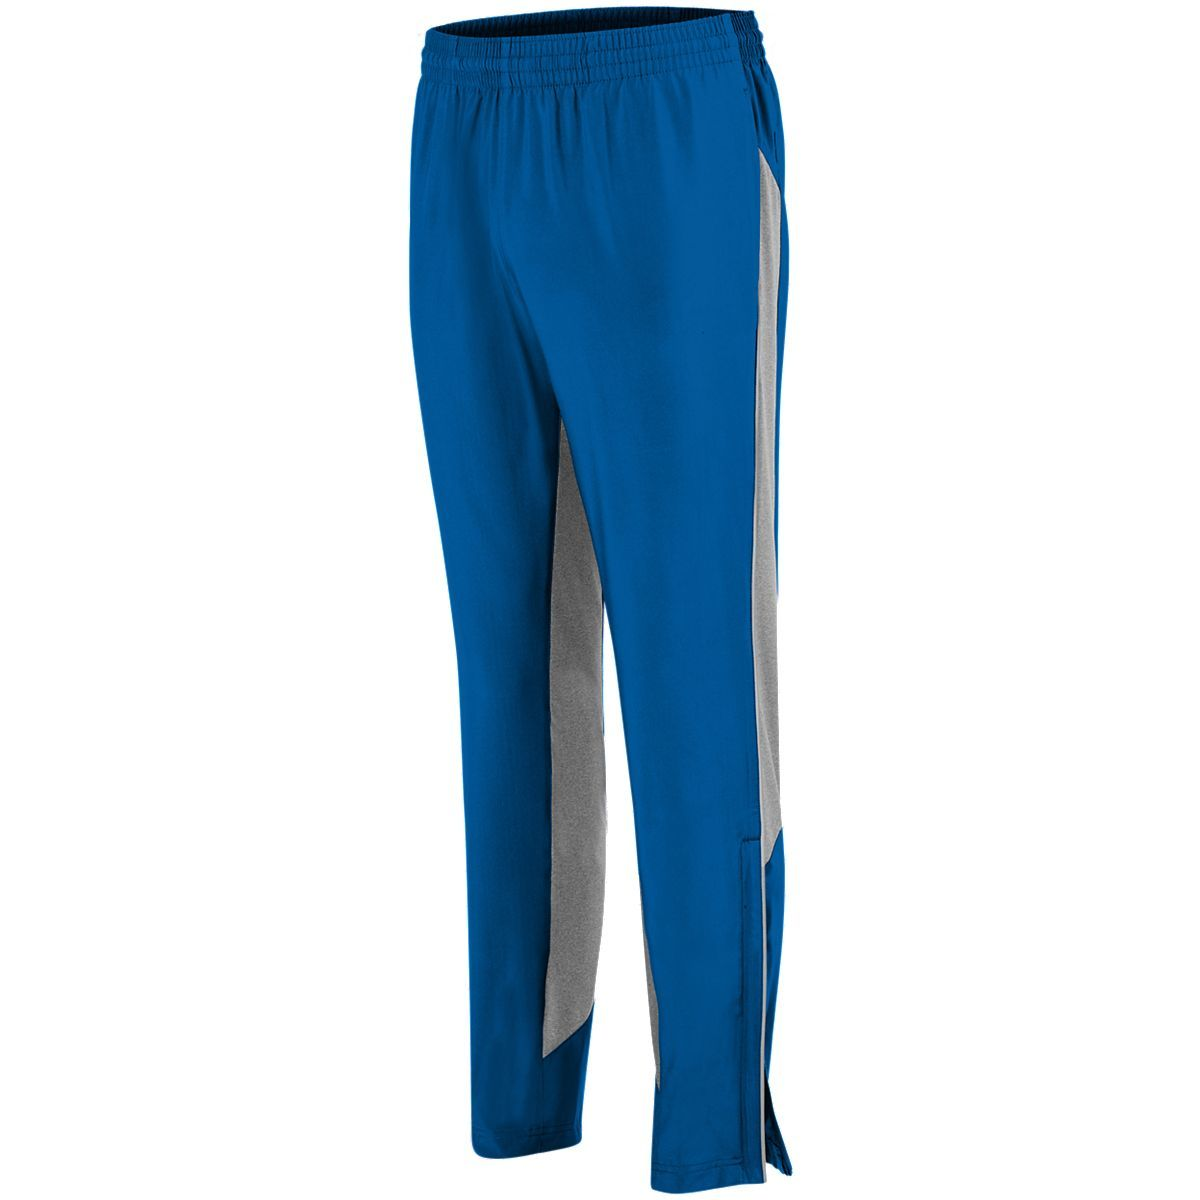 Preeminent Tapered Pant - ROYAL/GRAPHITE HEATHER